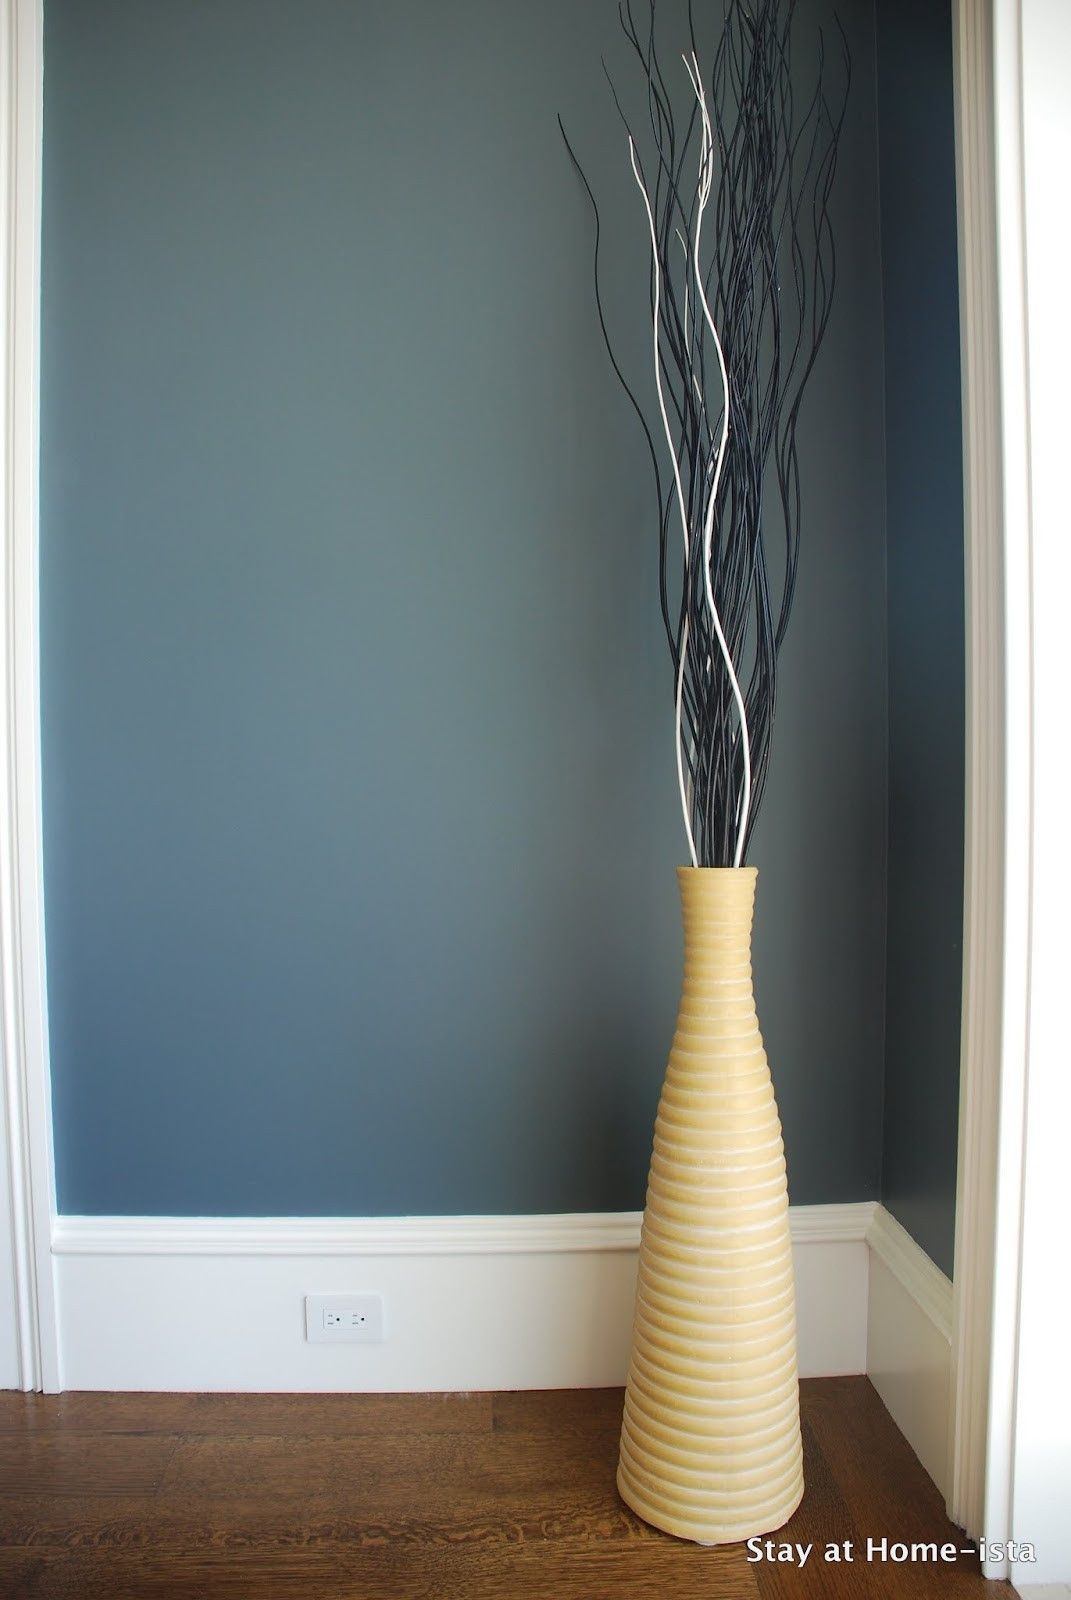 tall vase arrangements branches of floor vase branches collection tall vase decoration ideas vase and throughout floor vase branches photograph ikea interior design best pe s5h vases ikea fl